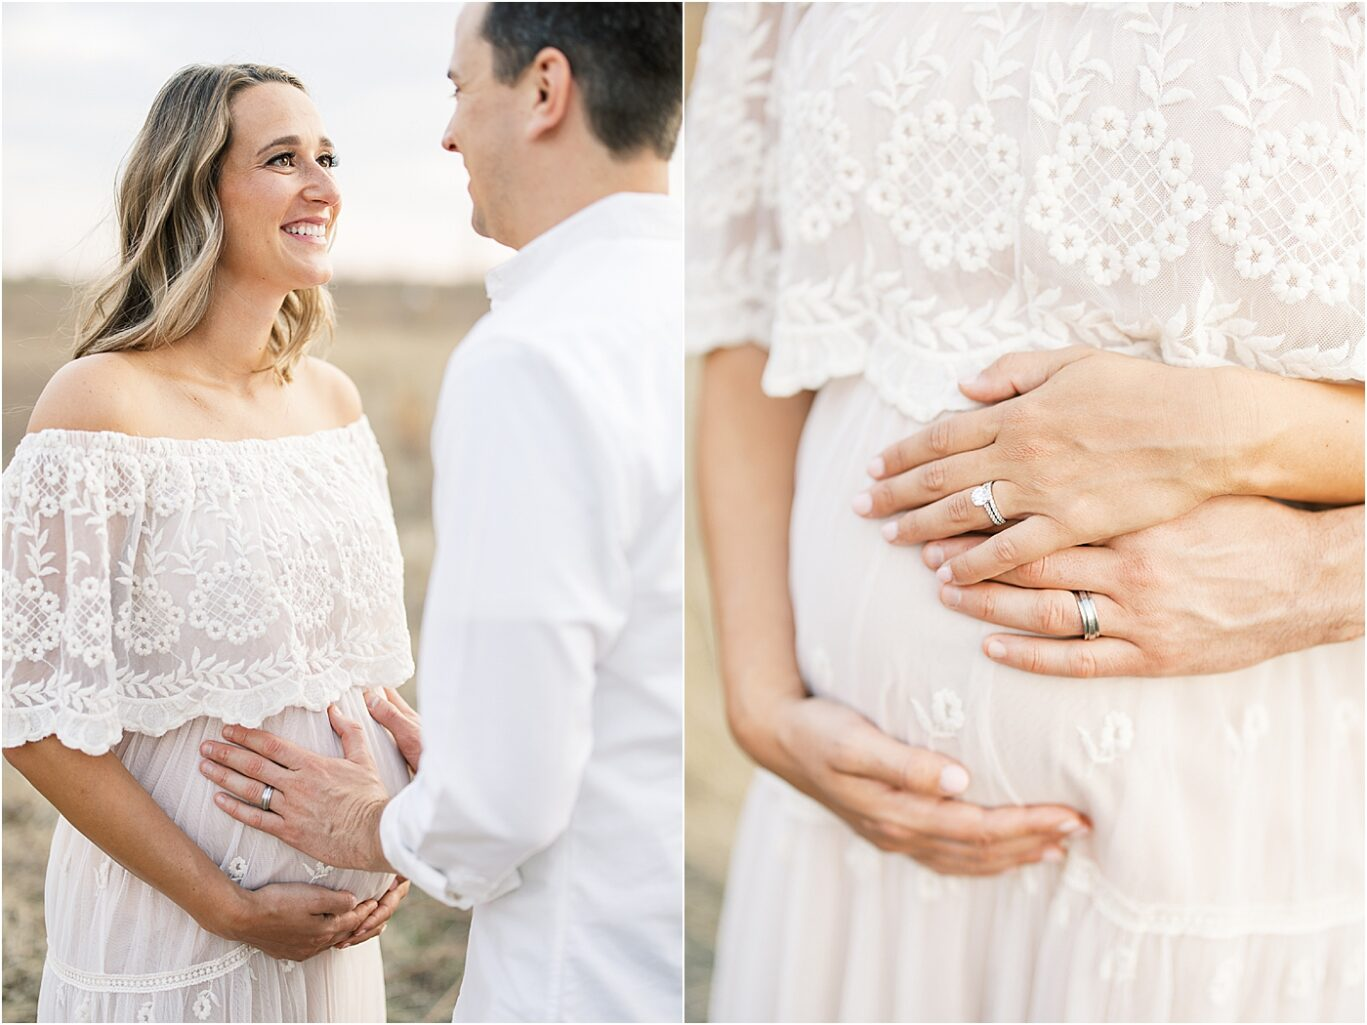 Mom and Dad looking at each other during outdoor maternity session in Broad Ripple. Photos by Lindsay Konopa Photography.